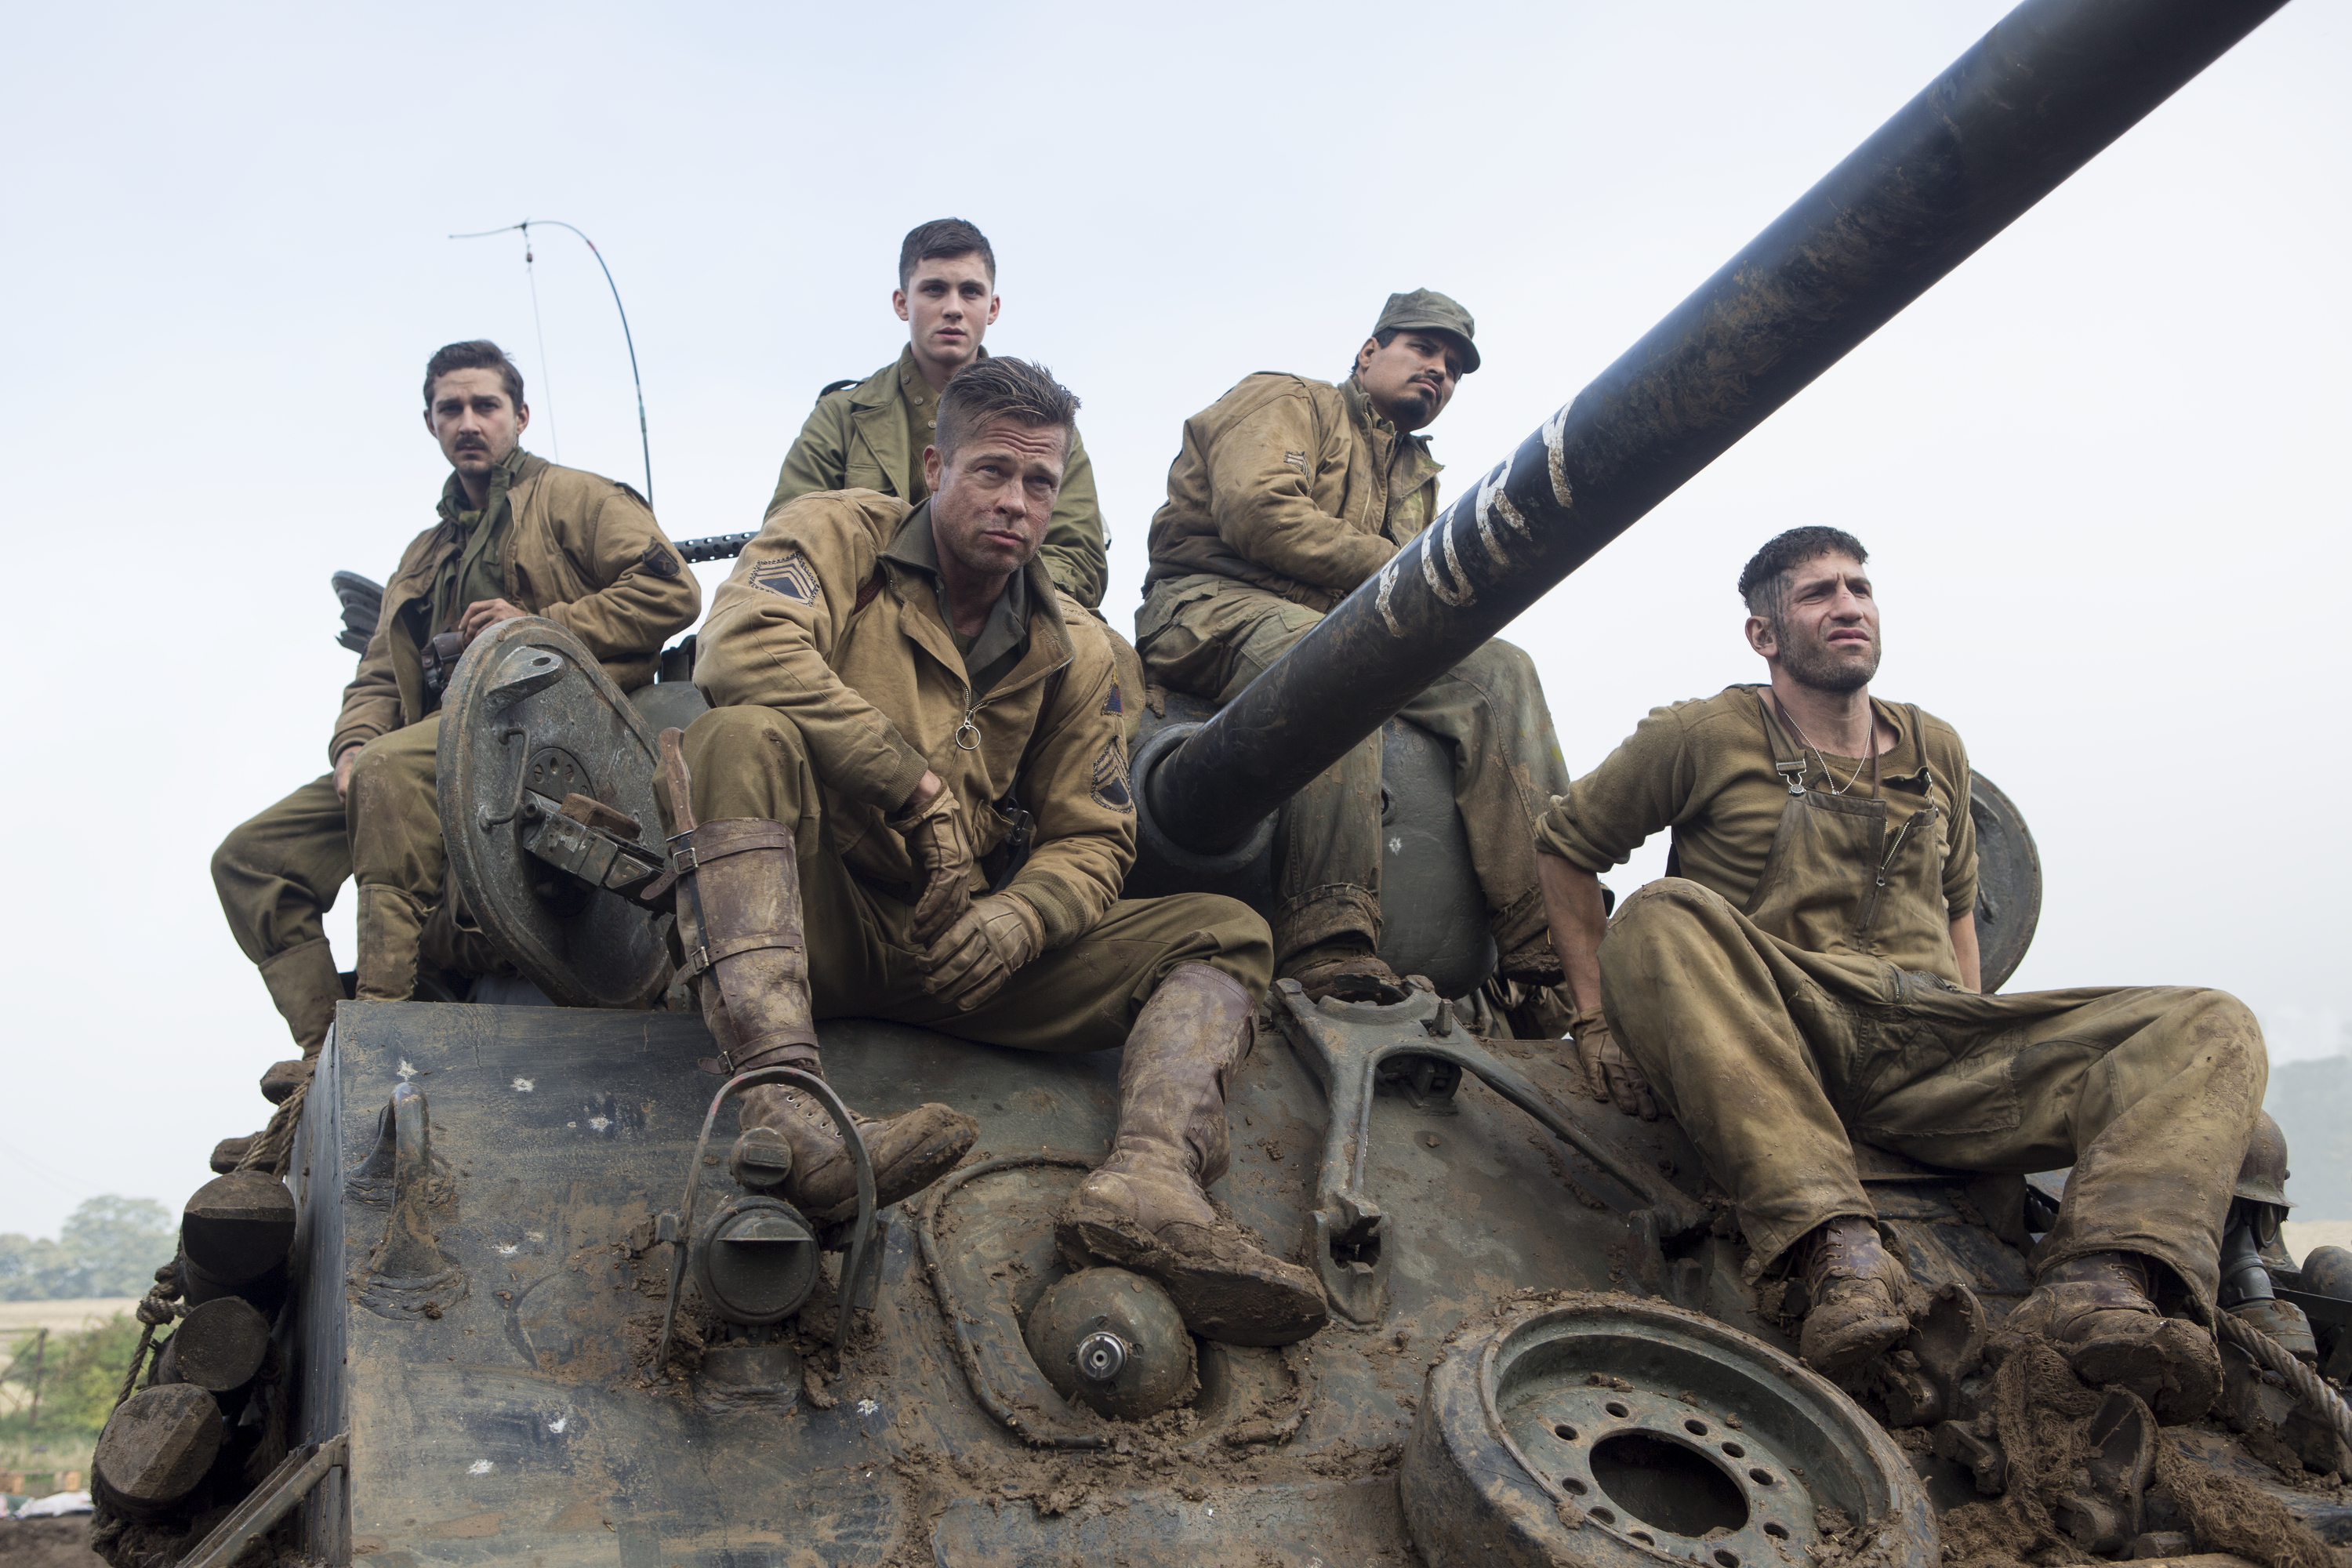 Brad Pitt gives a great performance as Wardaddy (Picture: Sony Pictures)